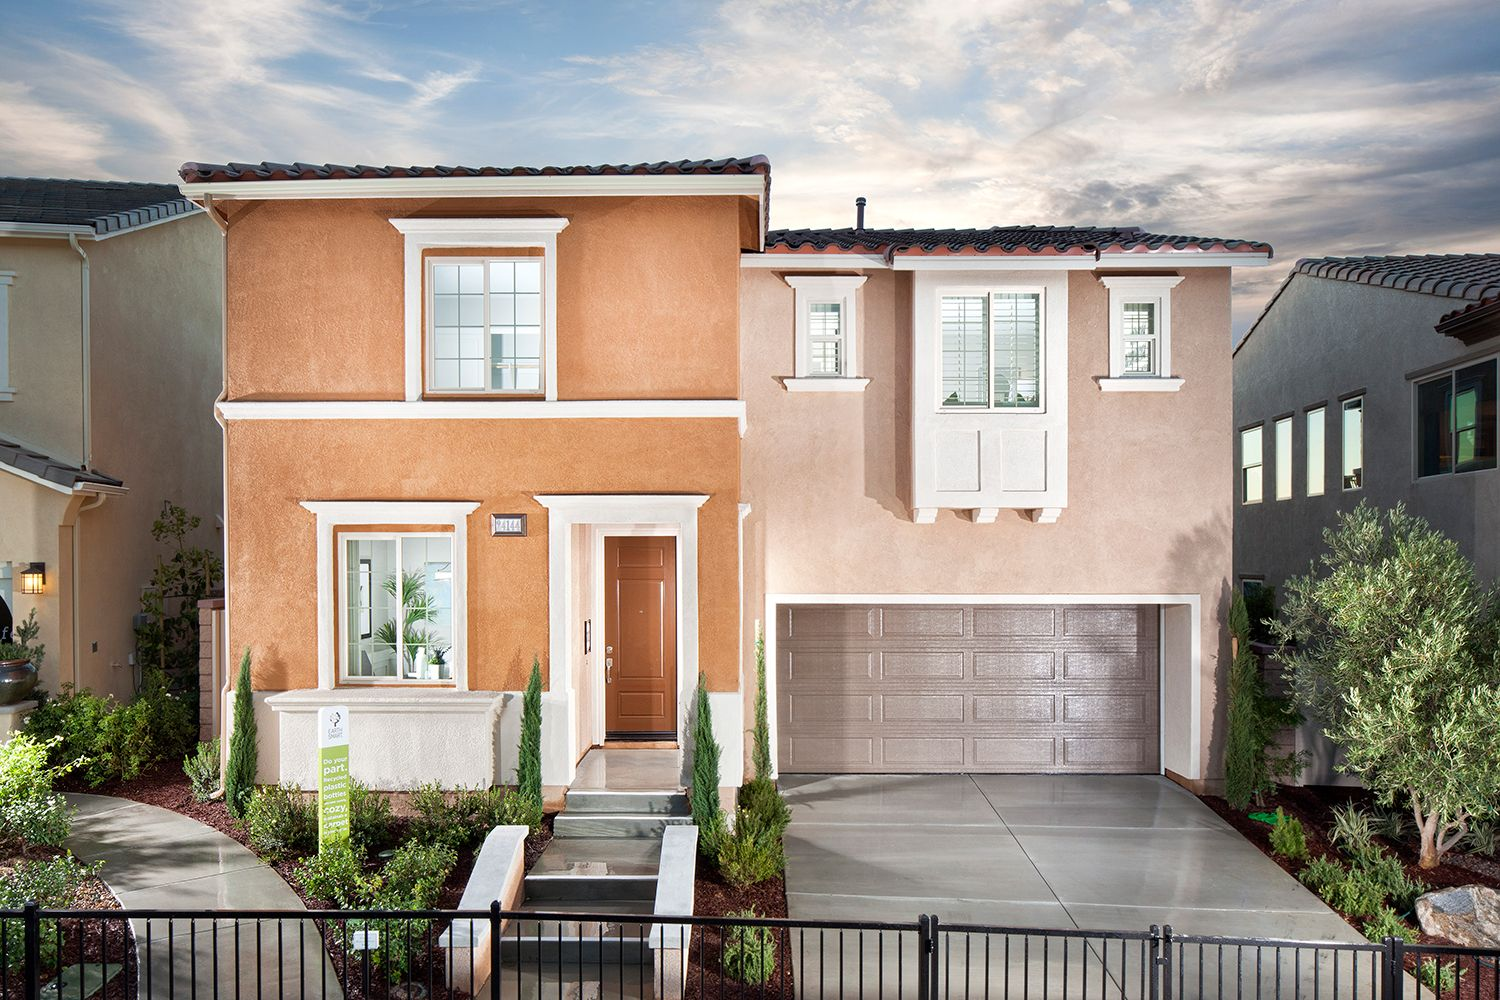 Single Family for Sale at Overlook - Plan 2 24142 Dahlia Way Lake Elsinore, California 92532 United States